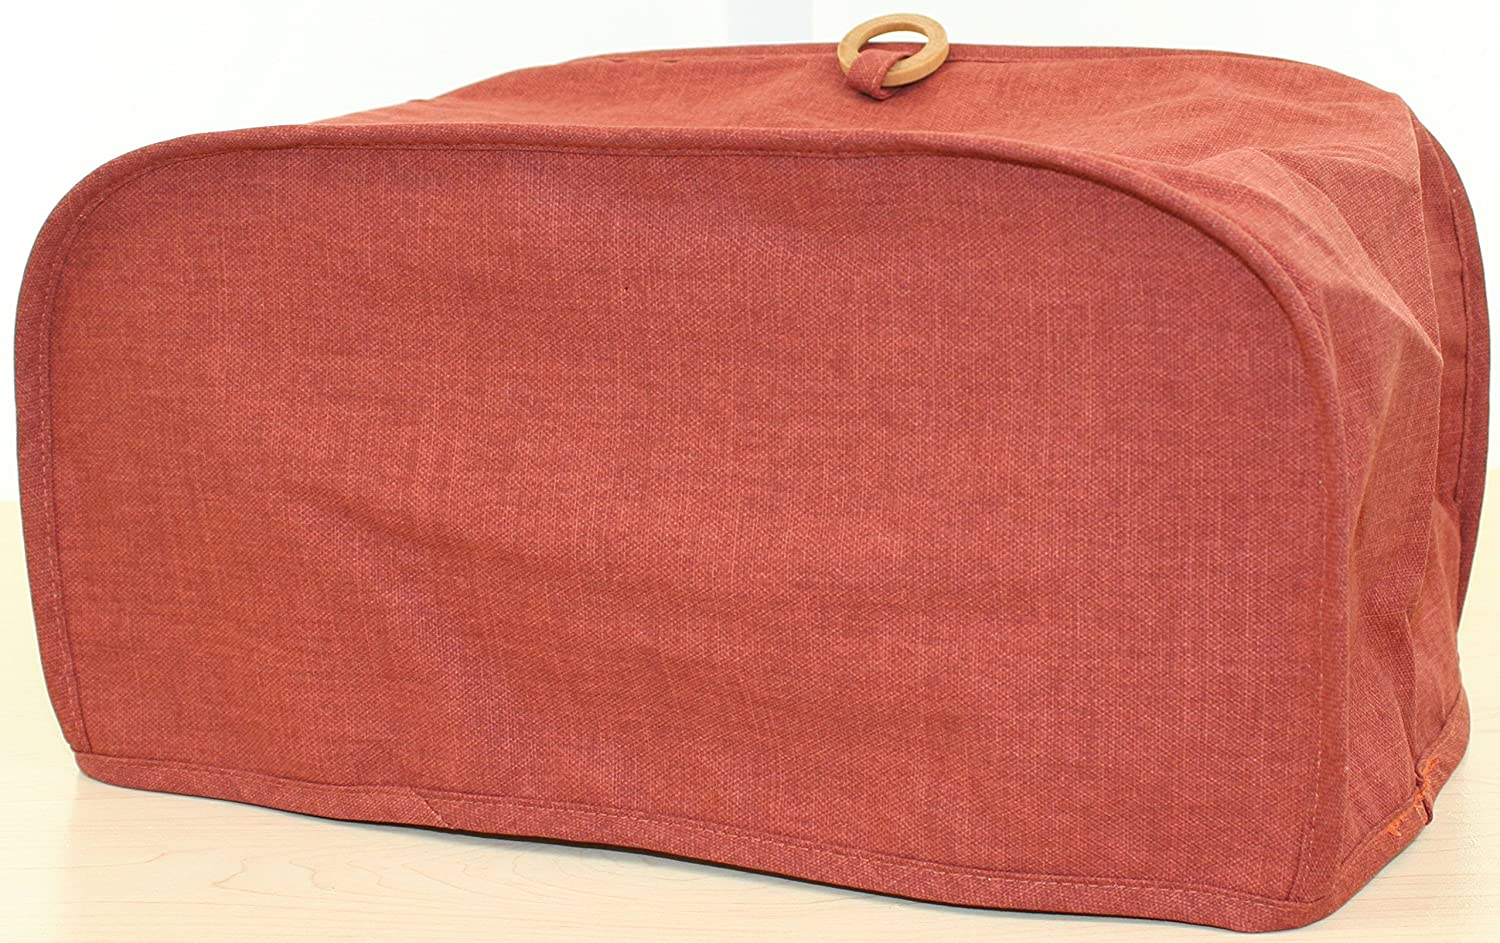 America At Home Toaster Oven Cover Red